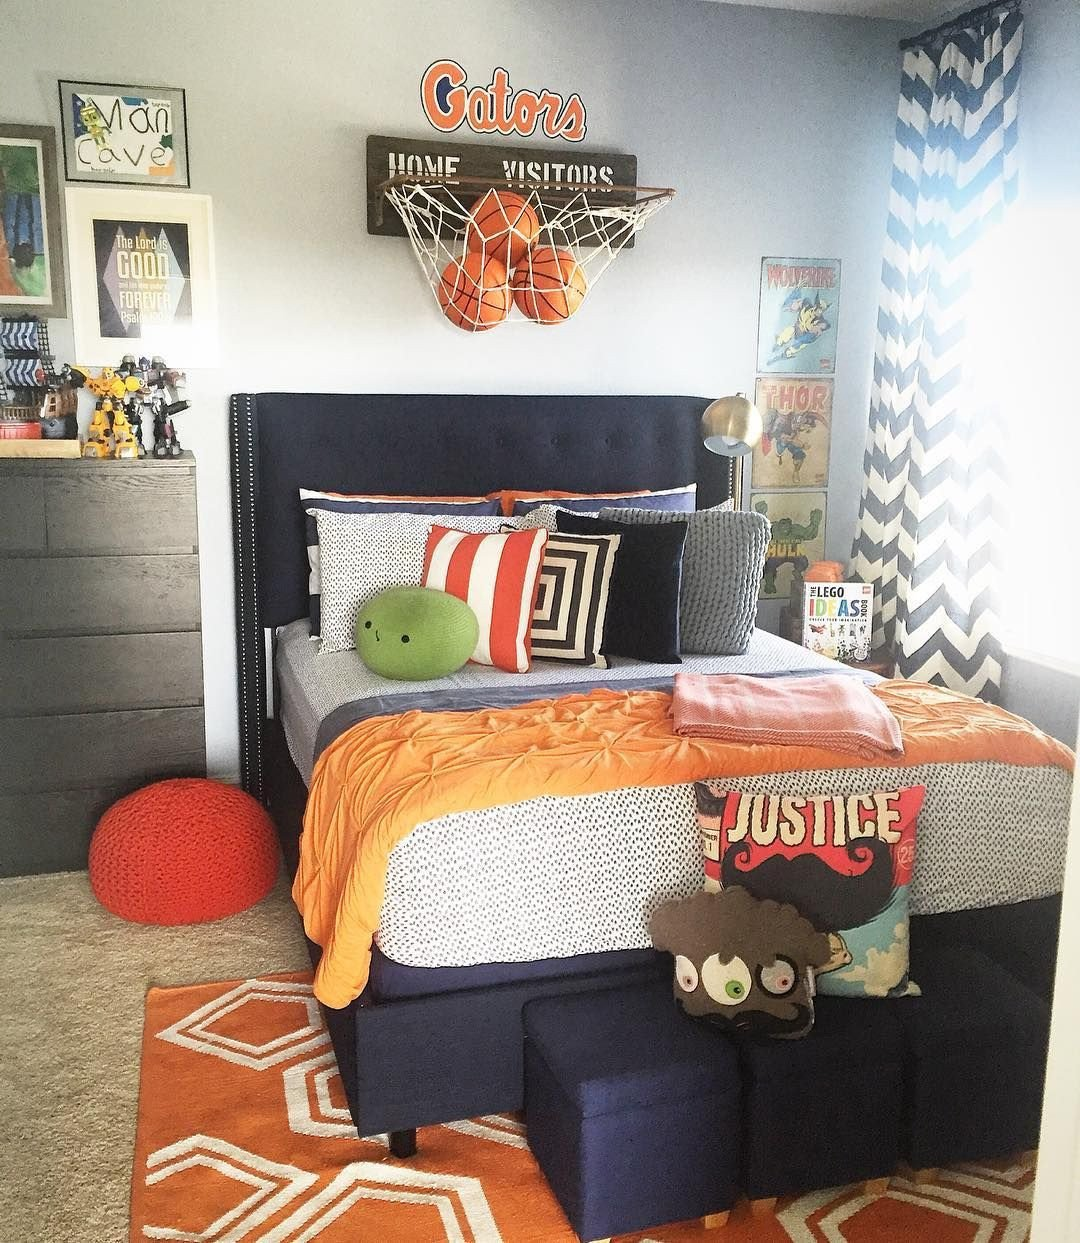 Sports Bedroom Decorating Ideas Inspirational No Photo Description Available